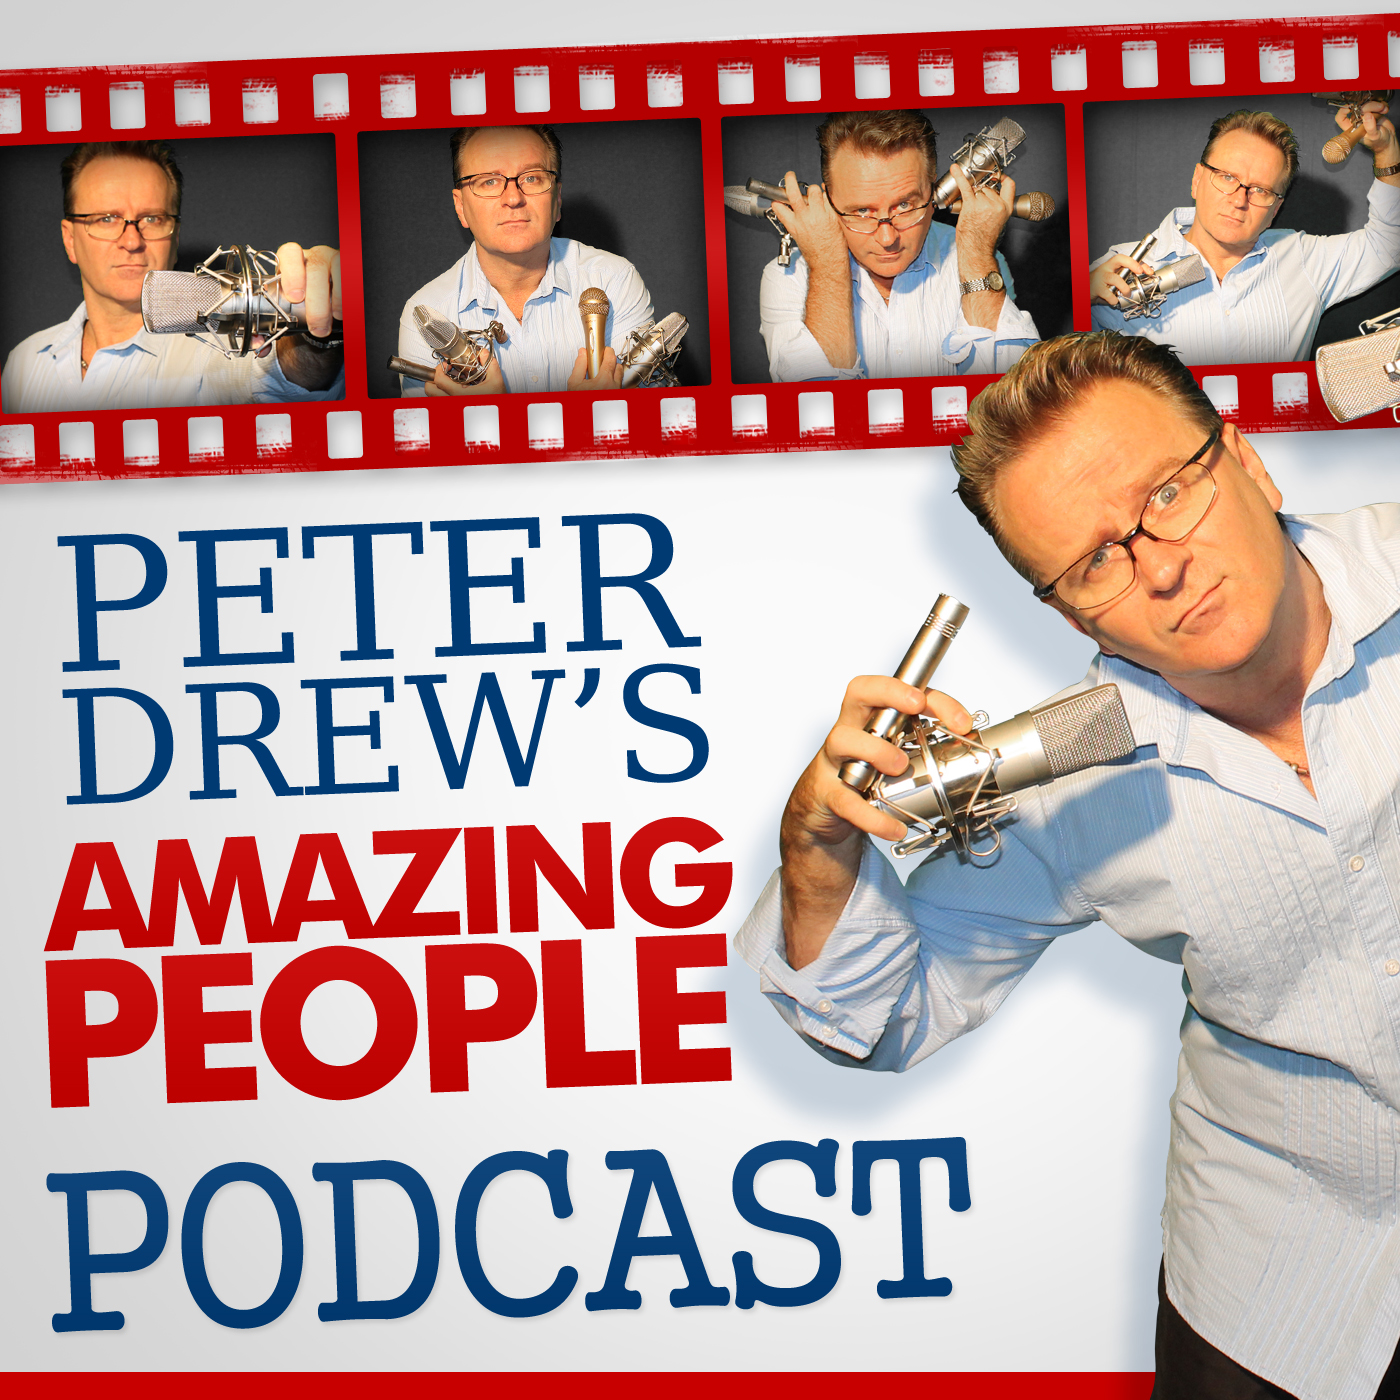 The Peter Drew Podcast